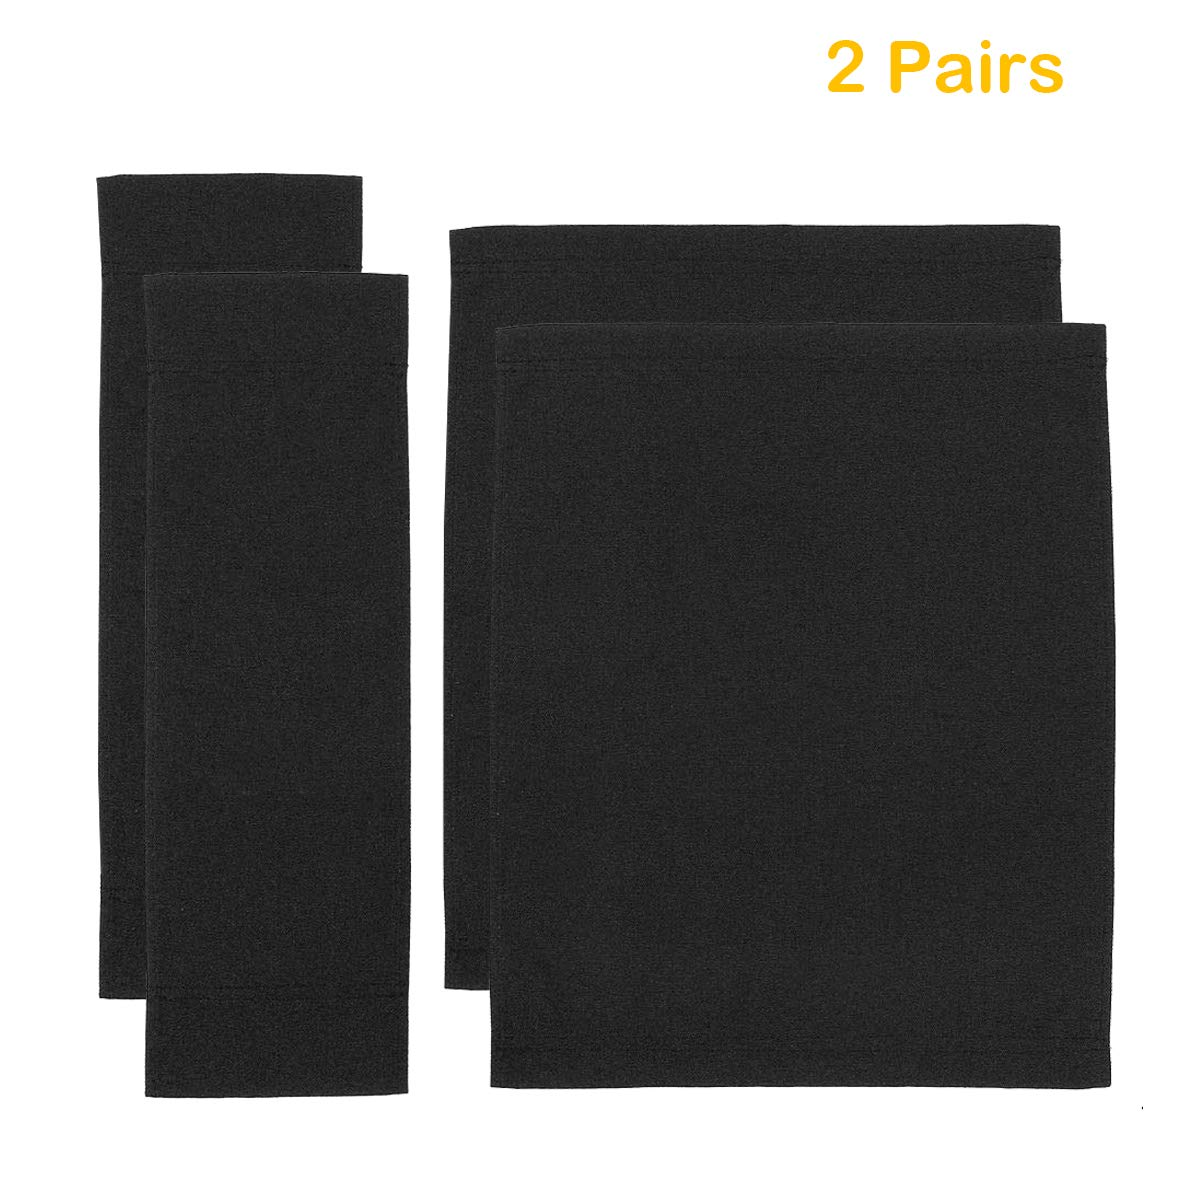 Counting Mars 2 Set Replacement Cover Canvas for Directors Chair, Black by Counting Mars